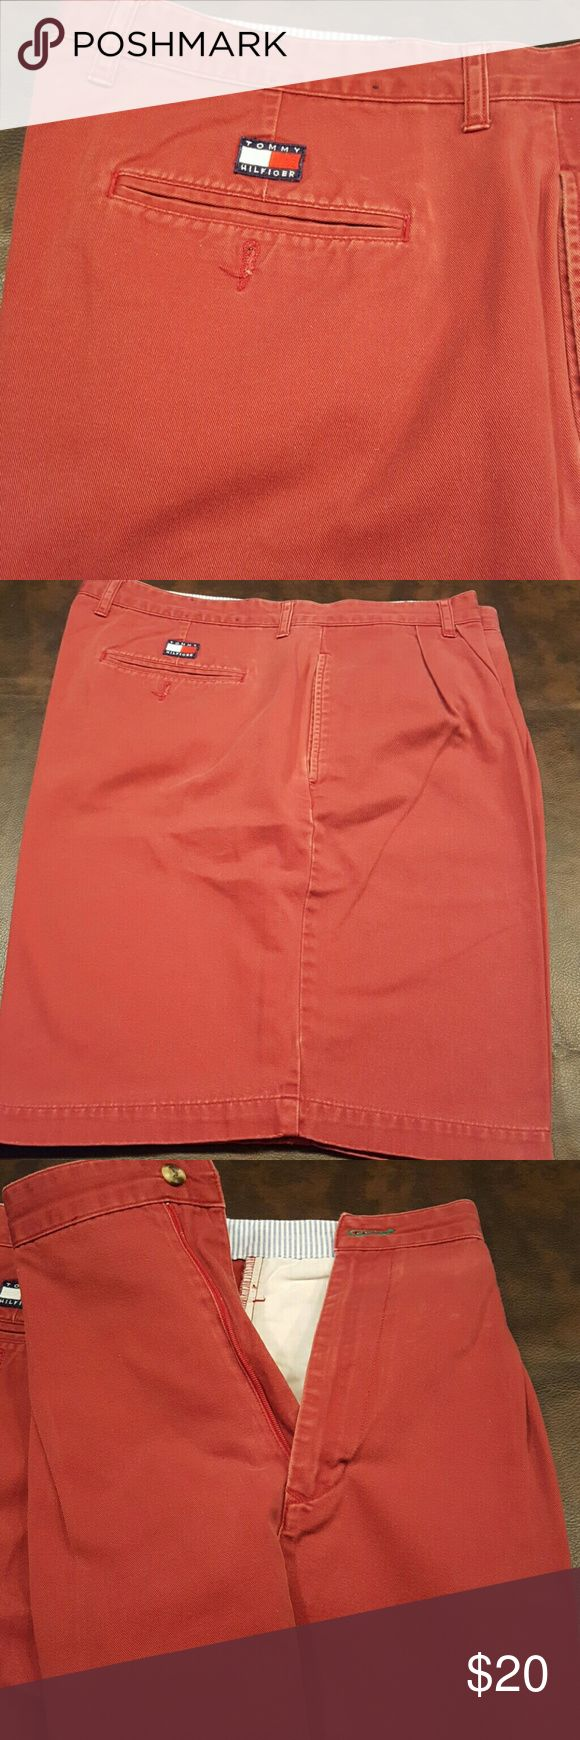 Men's Tommy Hilfiger Red shorts sz 40 EUC pleated zipper front shorts. Professionally cleaned and ready to wear. 9 in inseam.  Sz 40 waist. Tommy Hilfiger Shorts